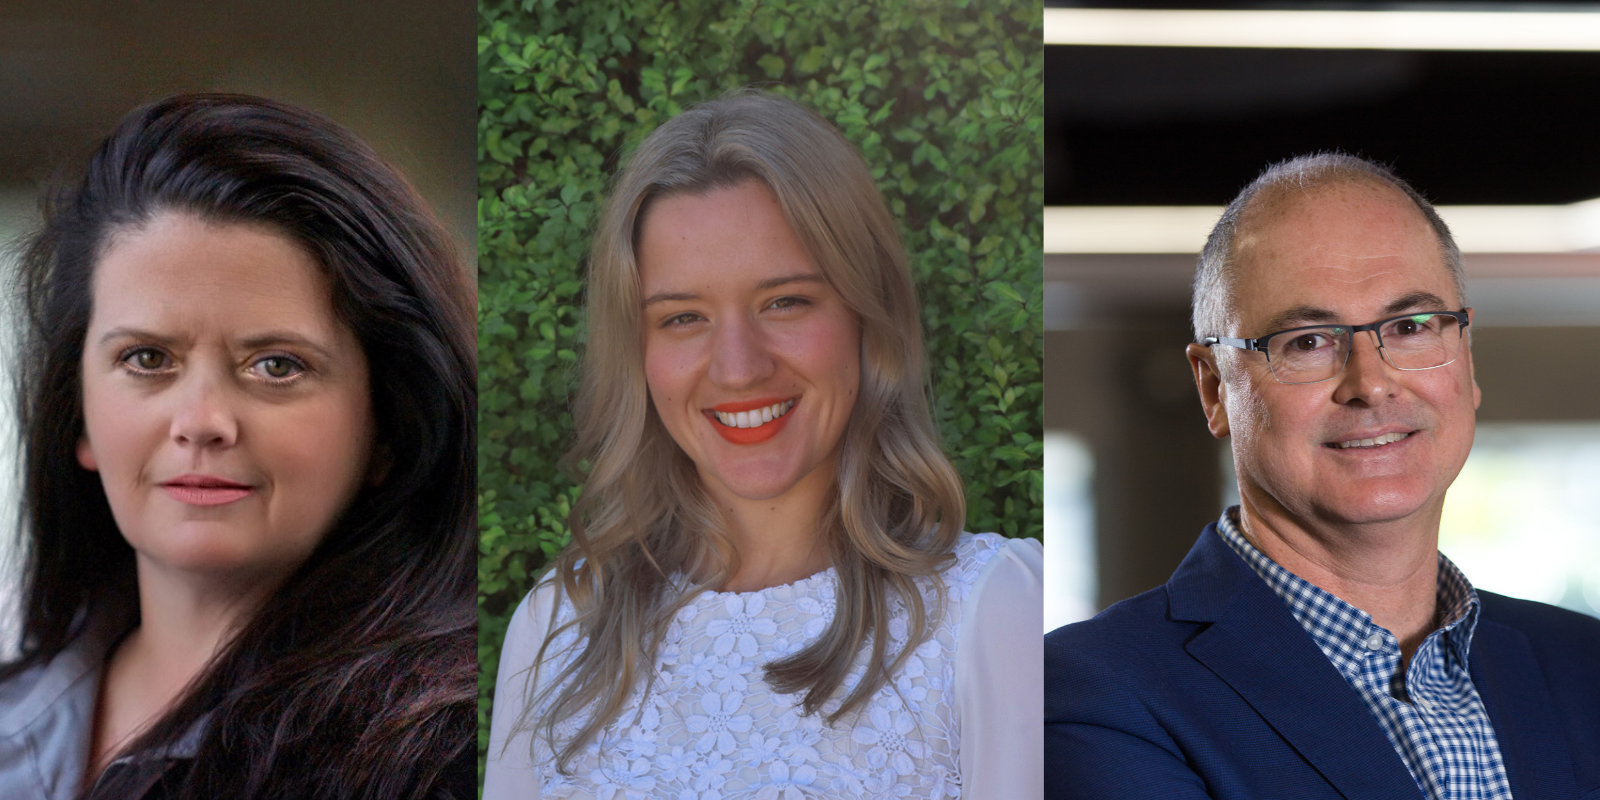 Australia & NZ GNI Leadership program fellows announced